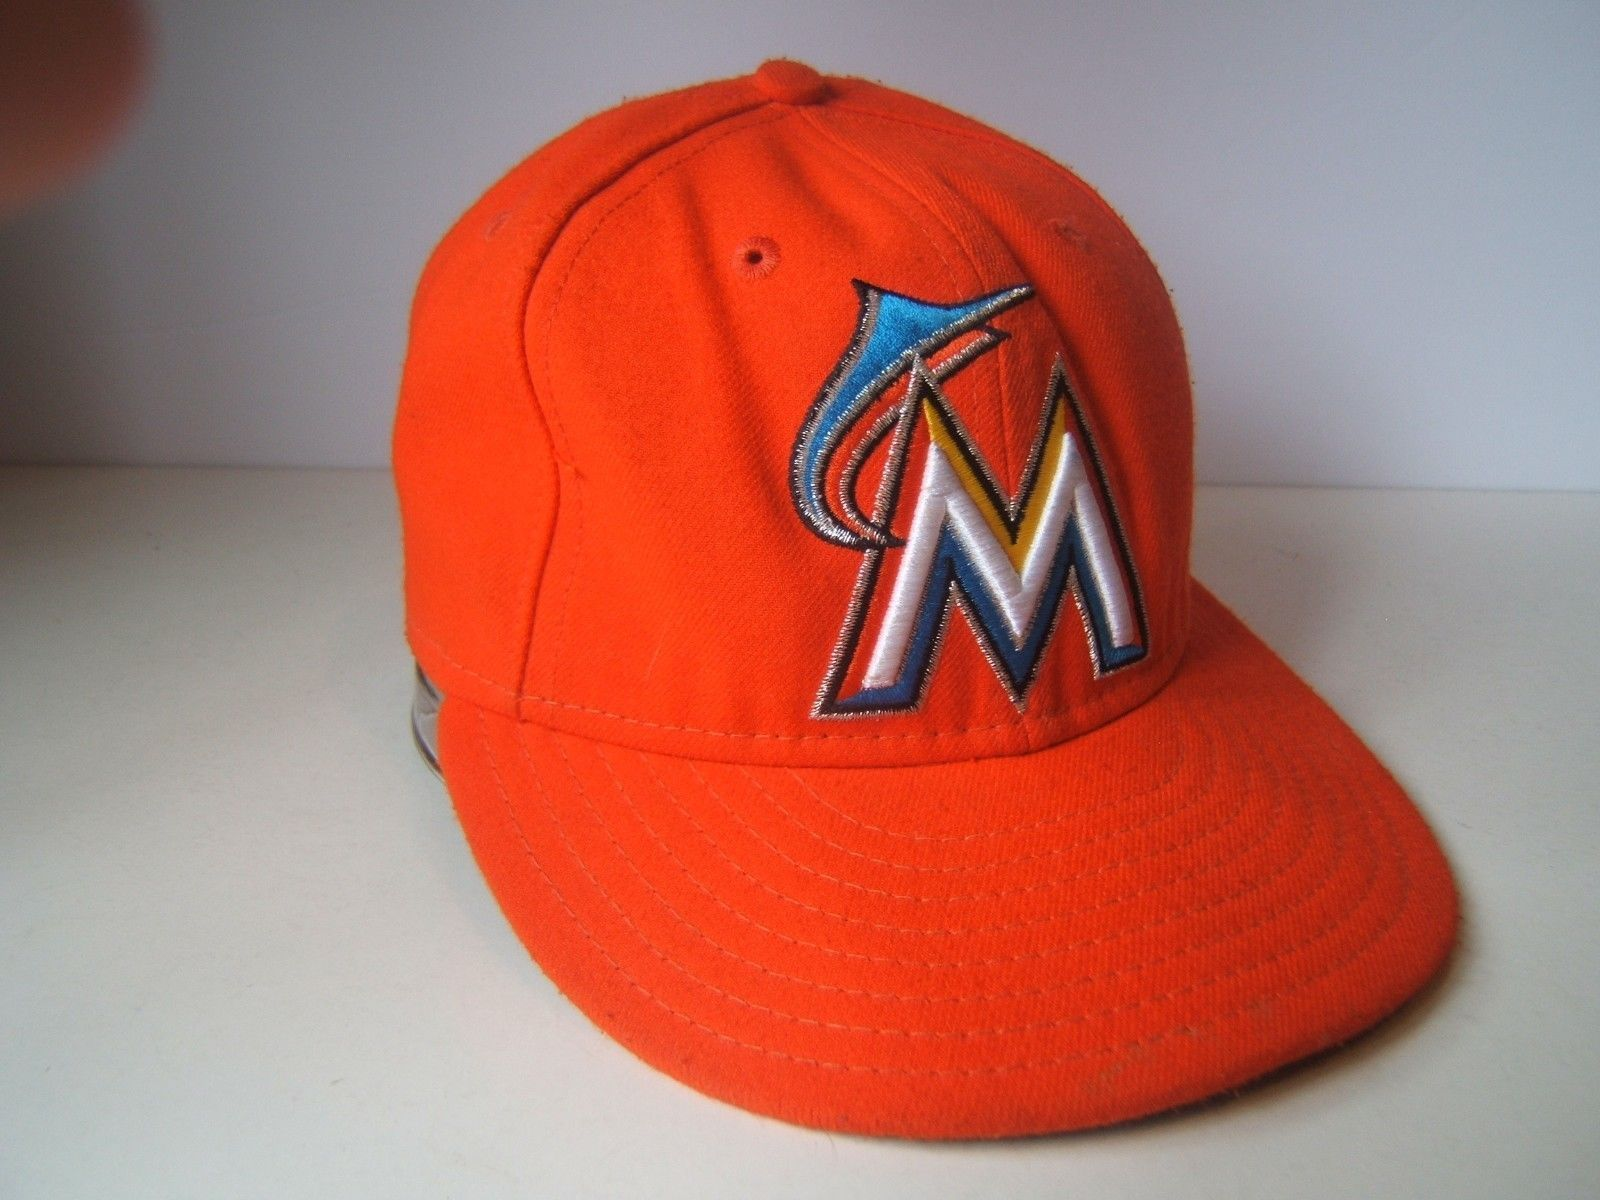 6f023d0aba512 Florida Marlins Hat Orange Fitted 7 55.8cm and 50 similar items. 57